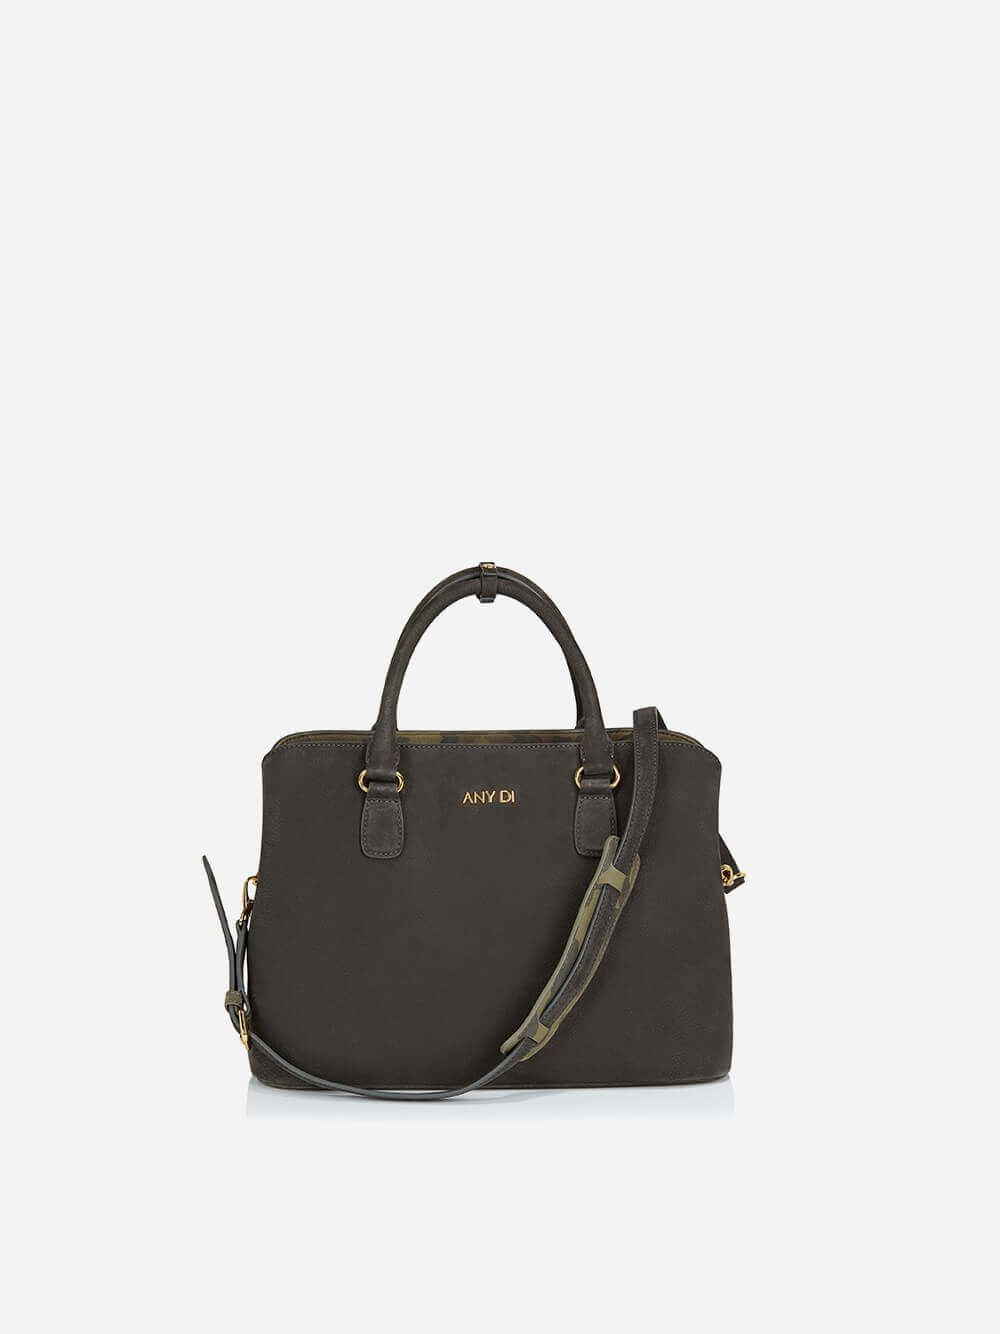 M Khaki Bag | Any Di